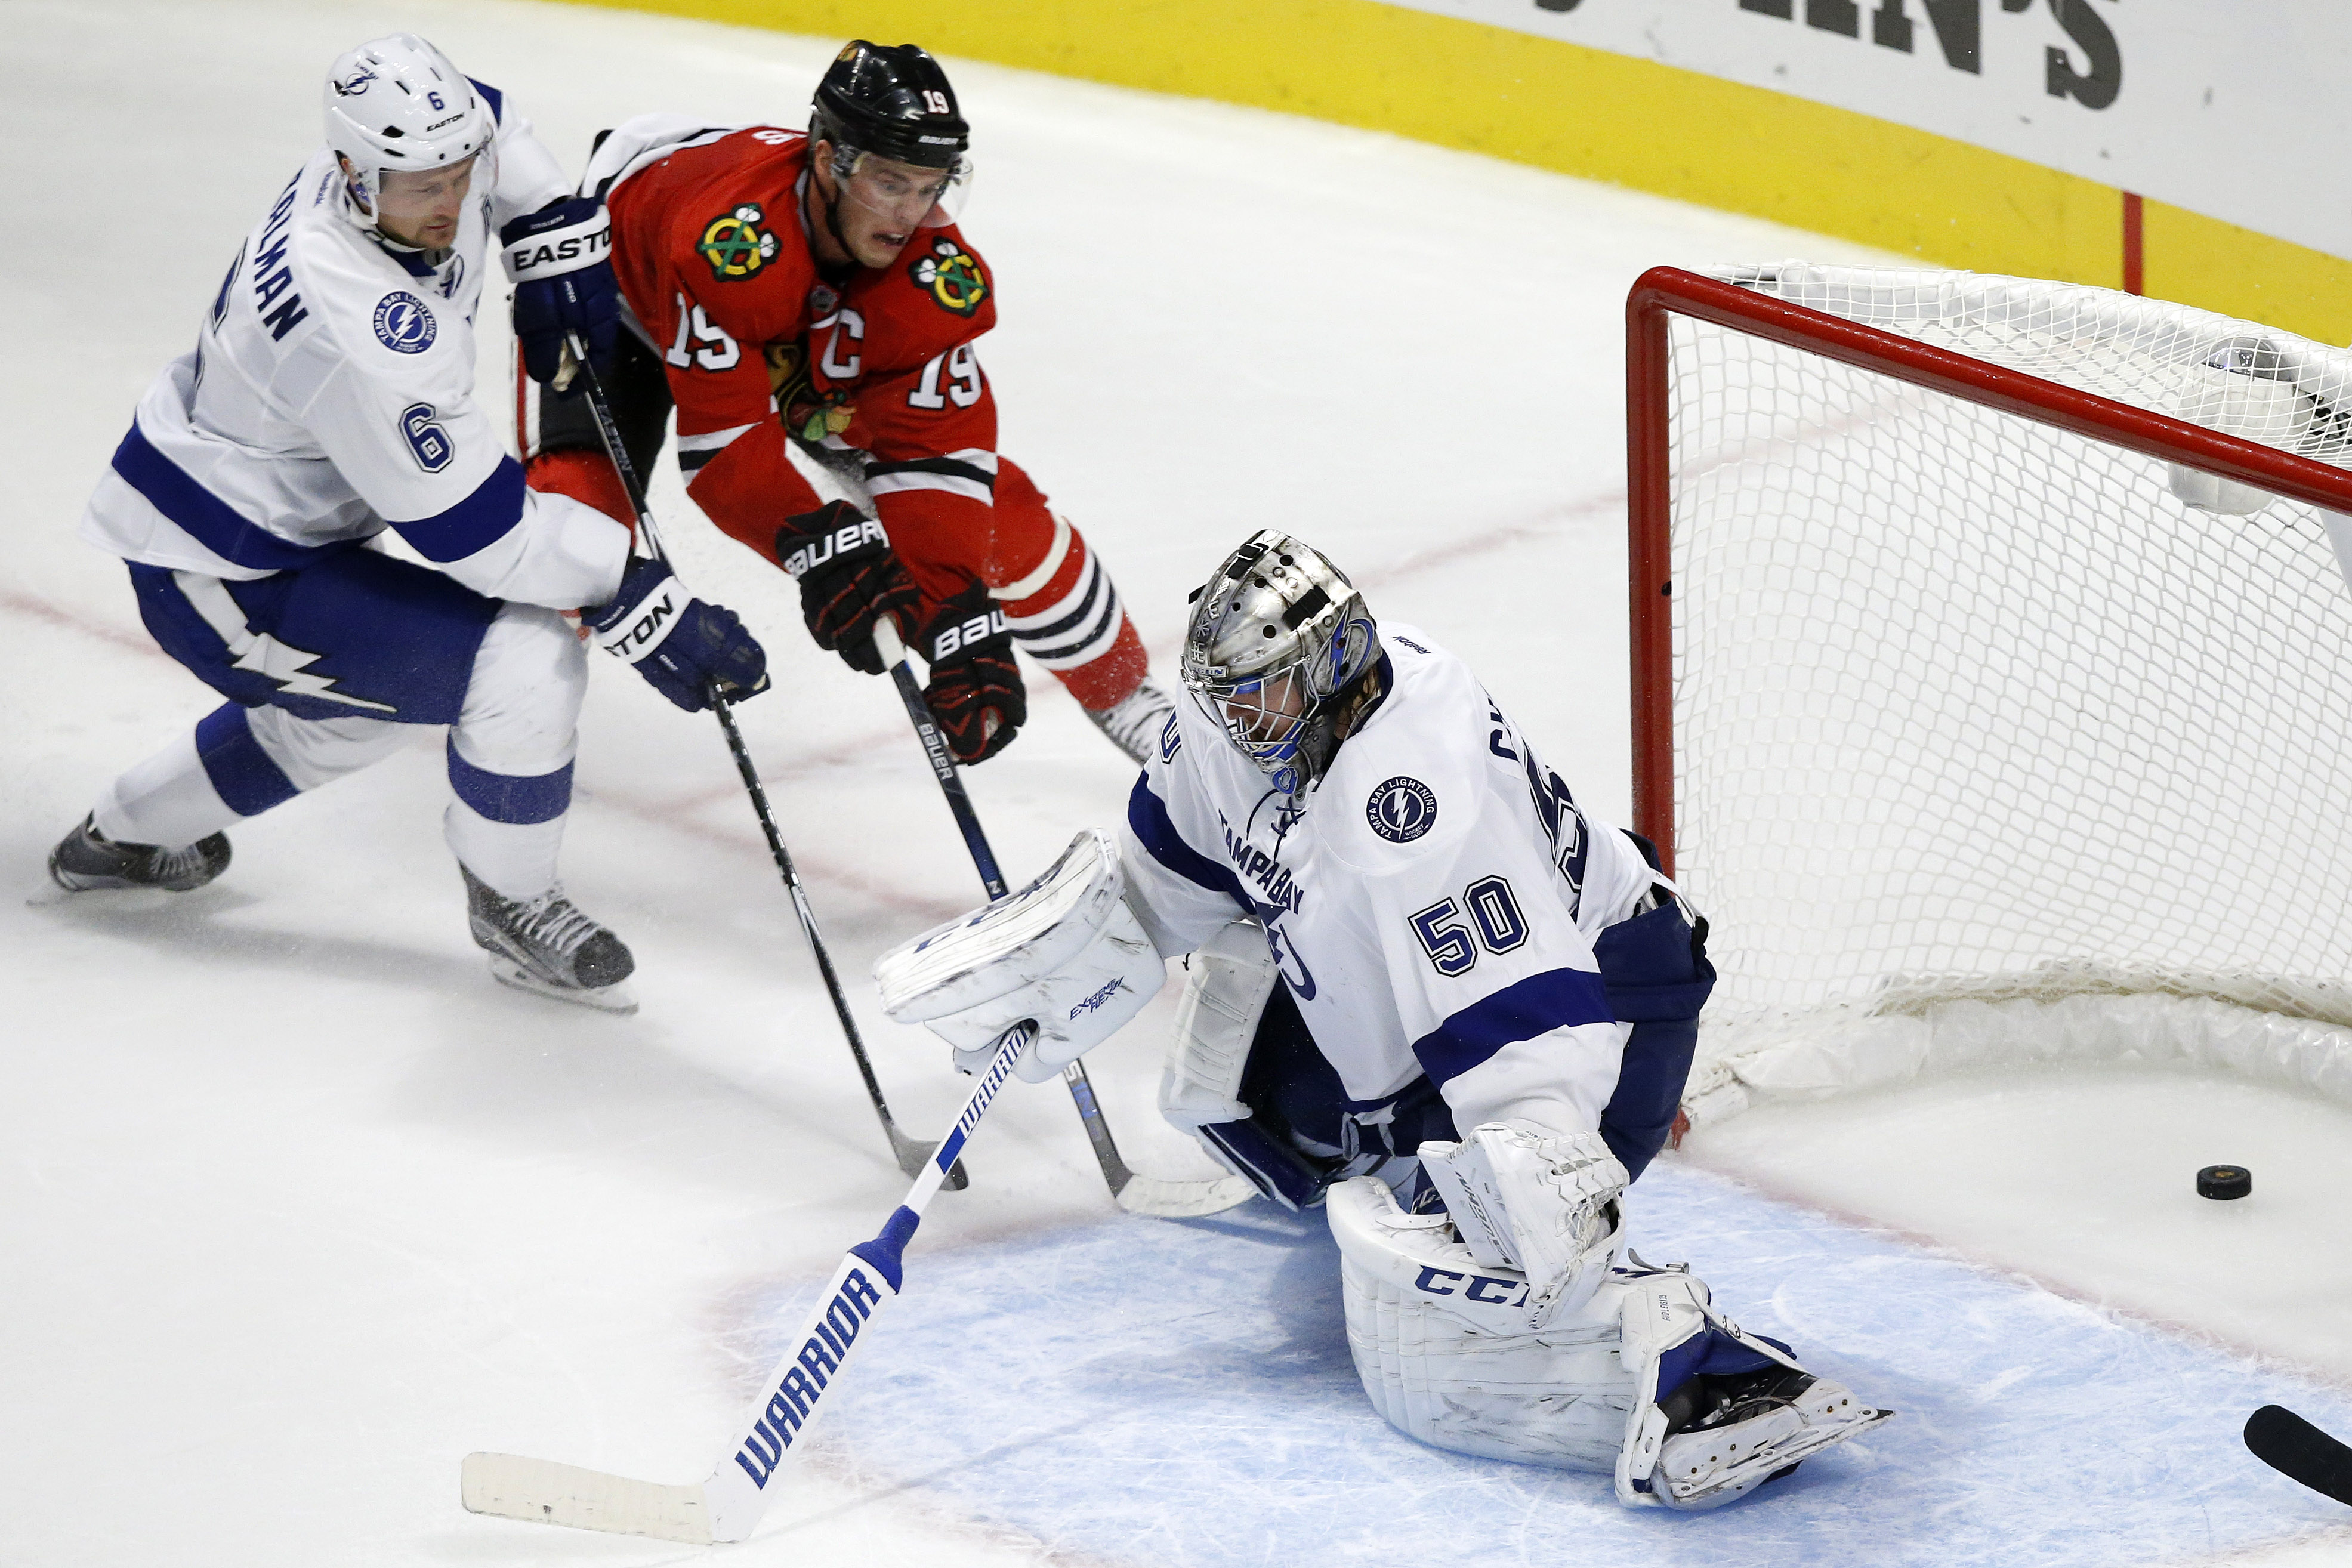 Chicago Blackhawks center Jonathan Toews (19) scores a game winning goal past Tampa Bay Lightning goalie Kristers Gudlevskis and defenseman Anton Stralman (6) during overtime in an NHL hockey game in Chicago, Saturday, Oct. 24, 2015. Chicago won 1-0. (AP